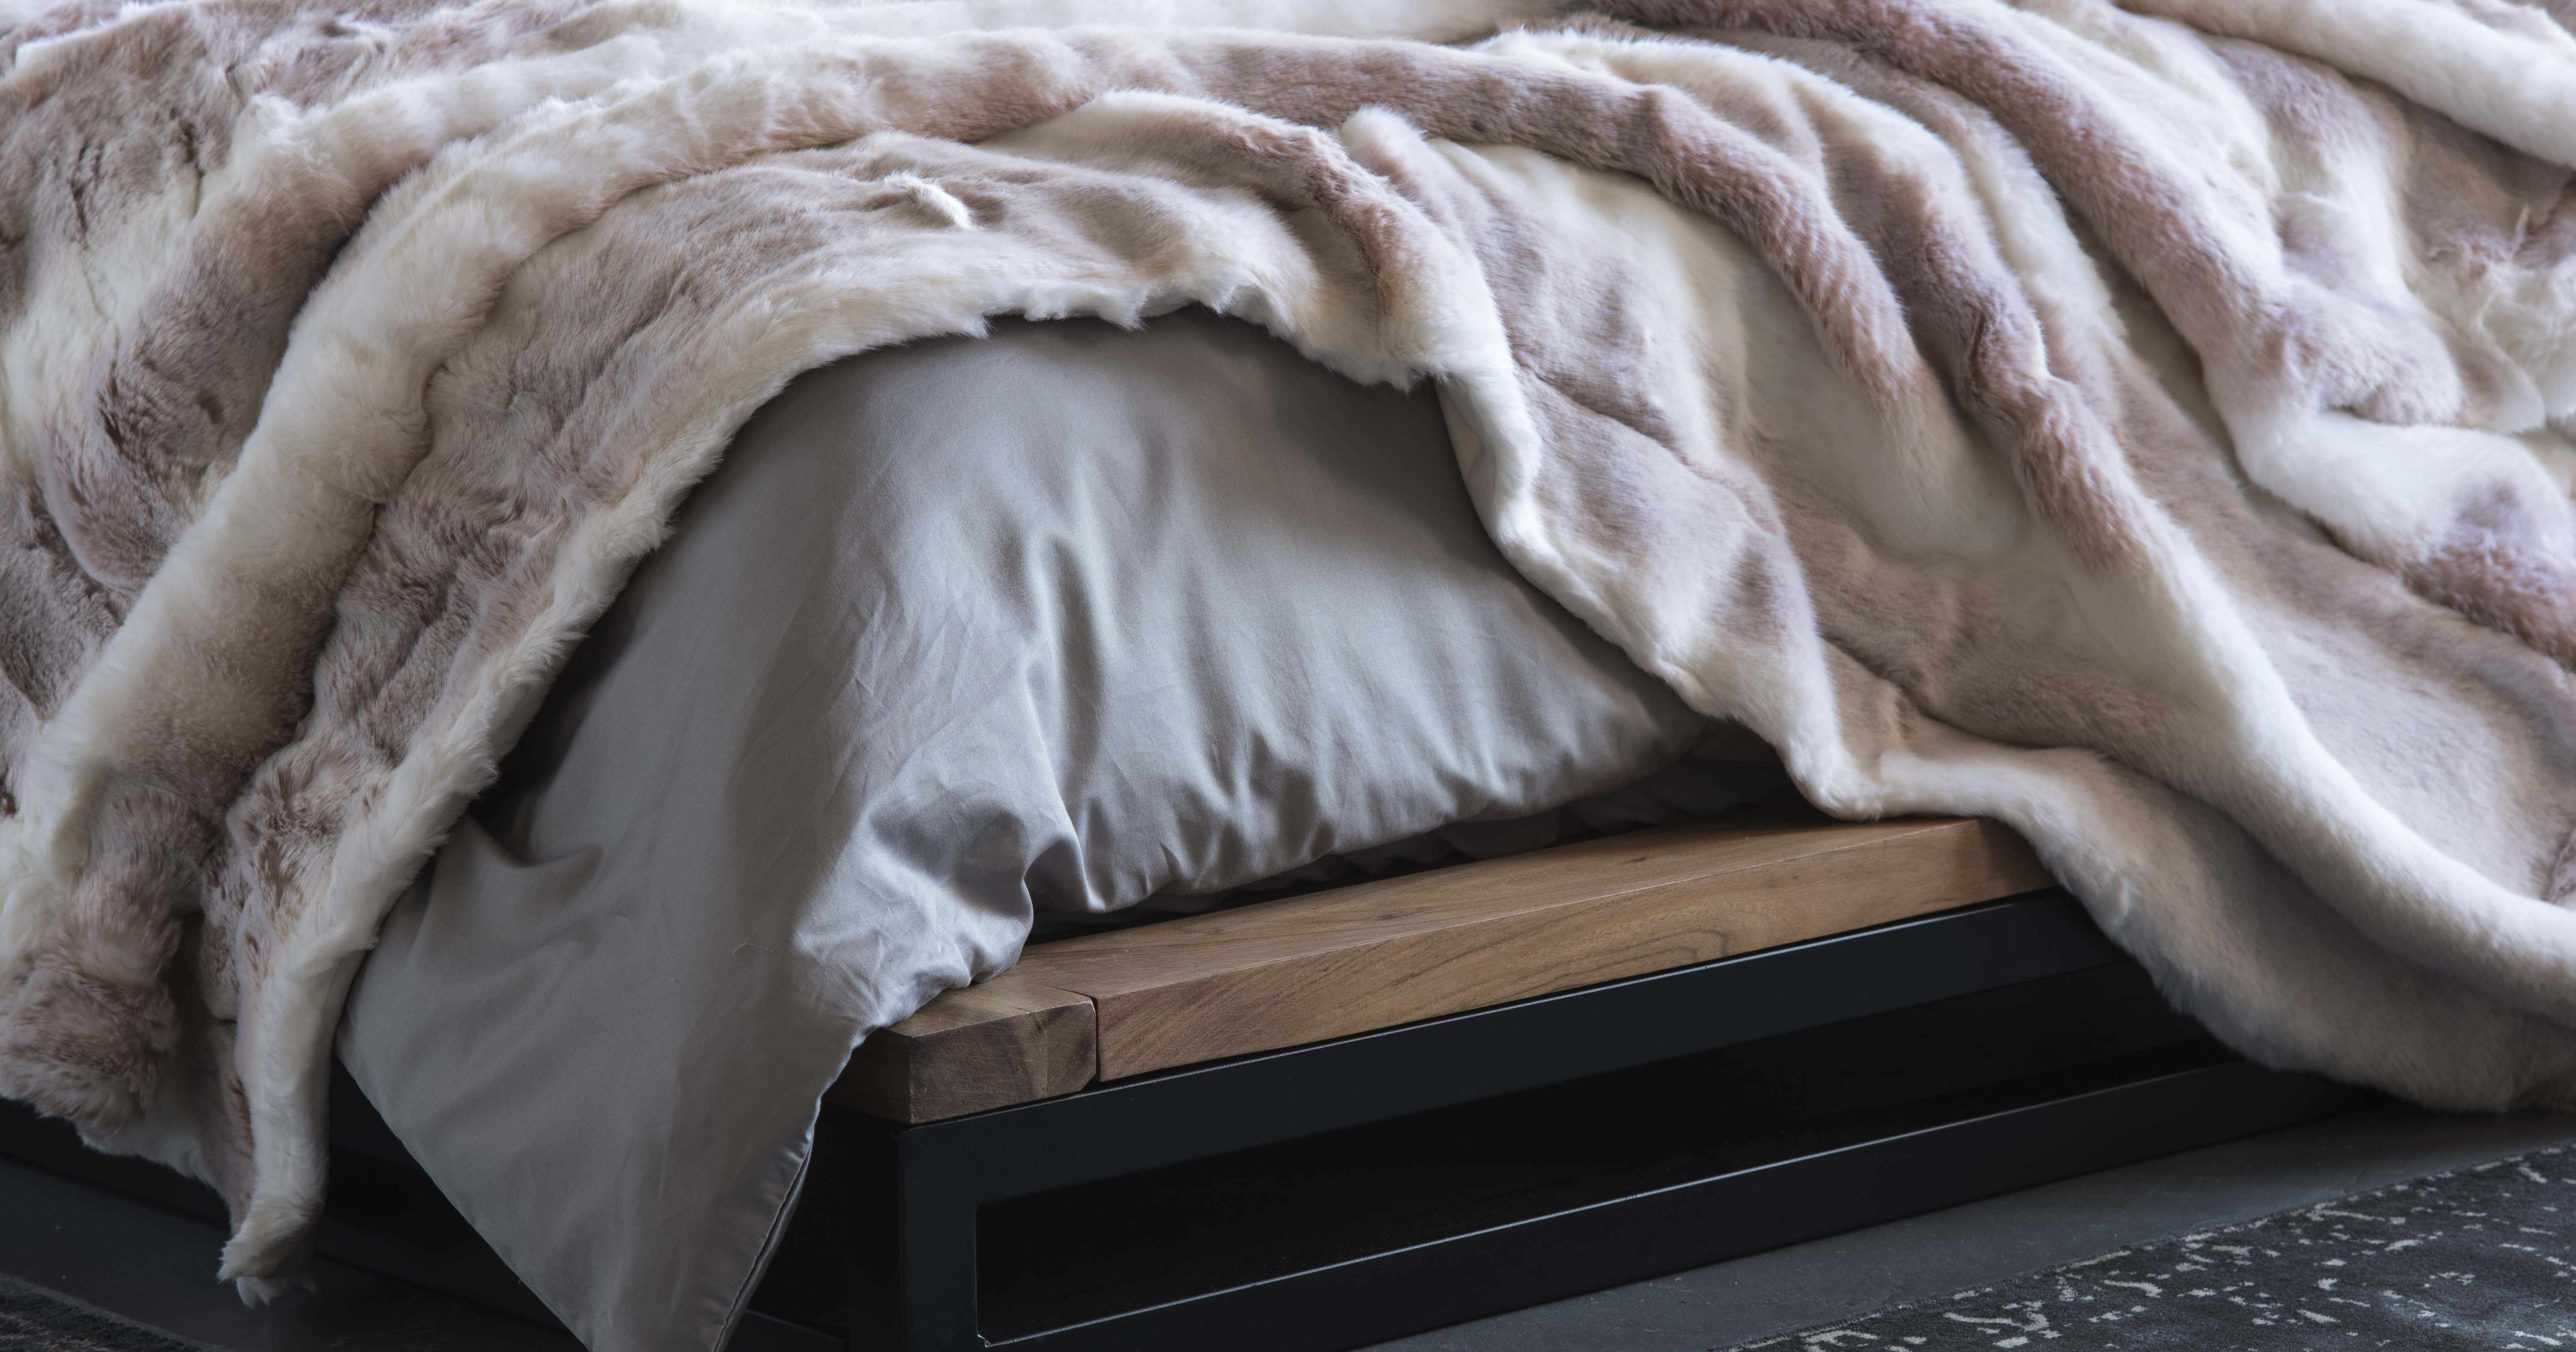 CHOOSING THE IDEAL WINTER BLANKET